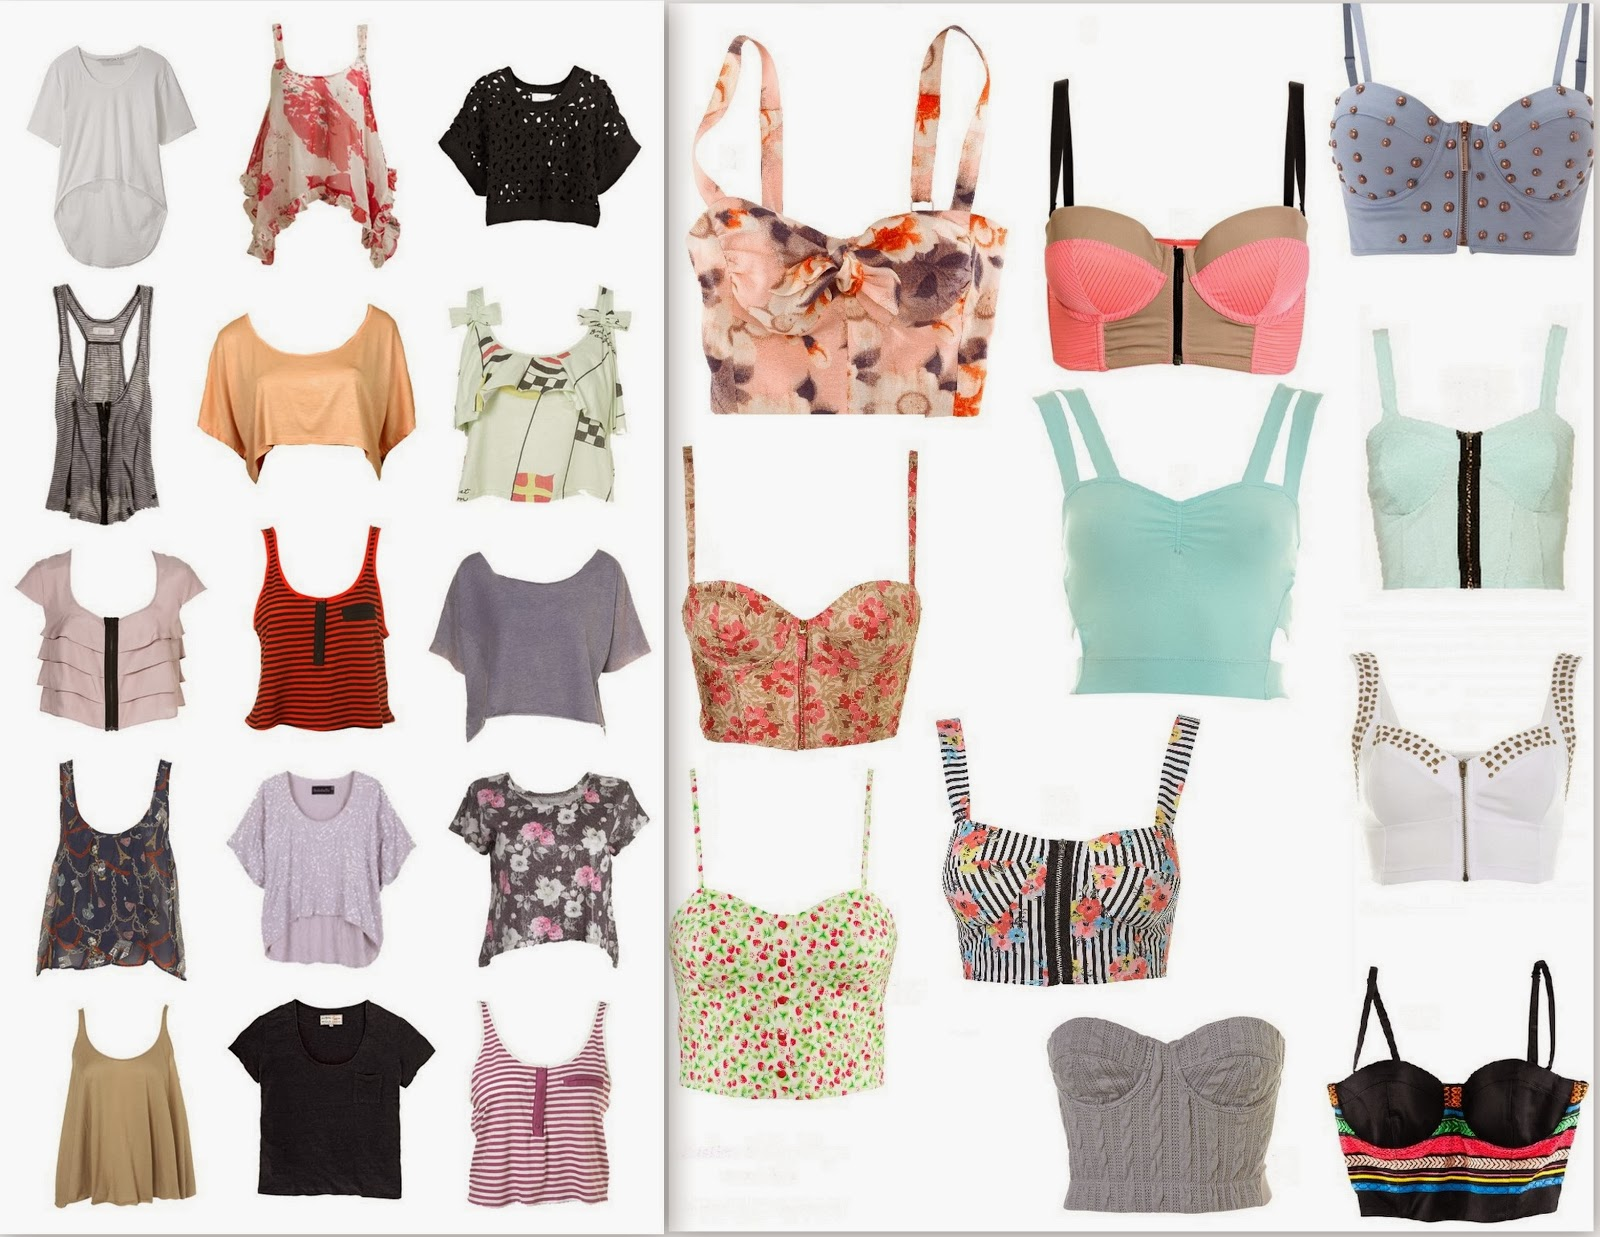 crop tops, crop t-shirts, bustier crop tops, printed crop tops,